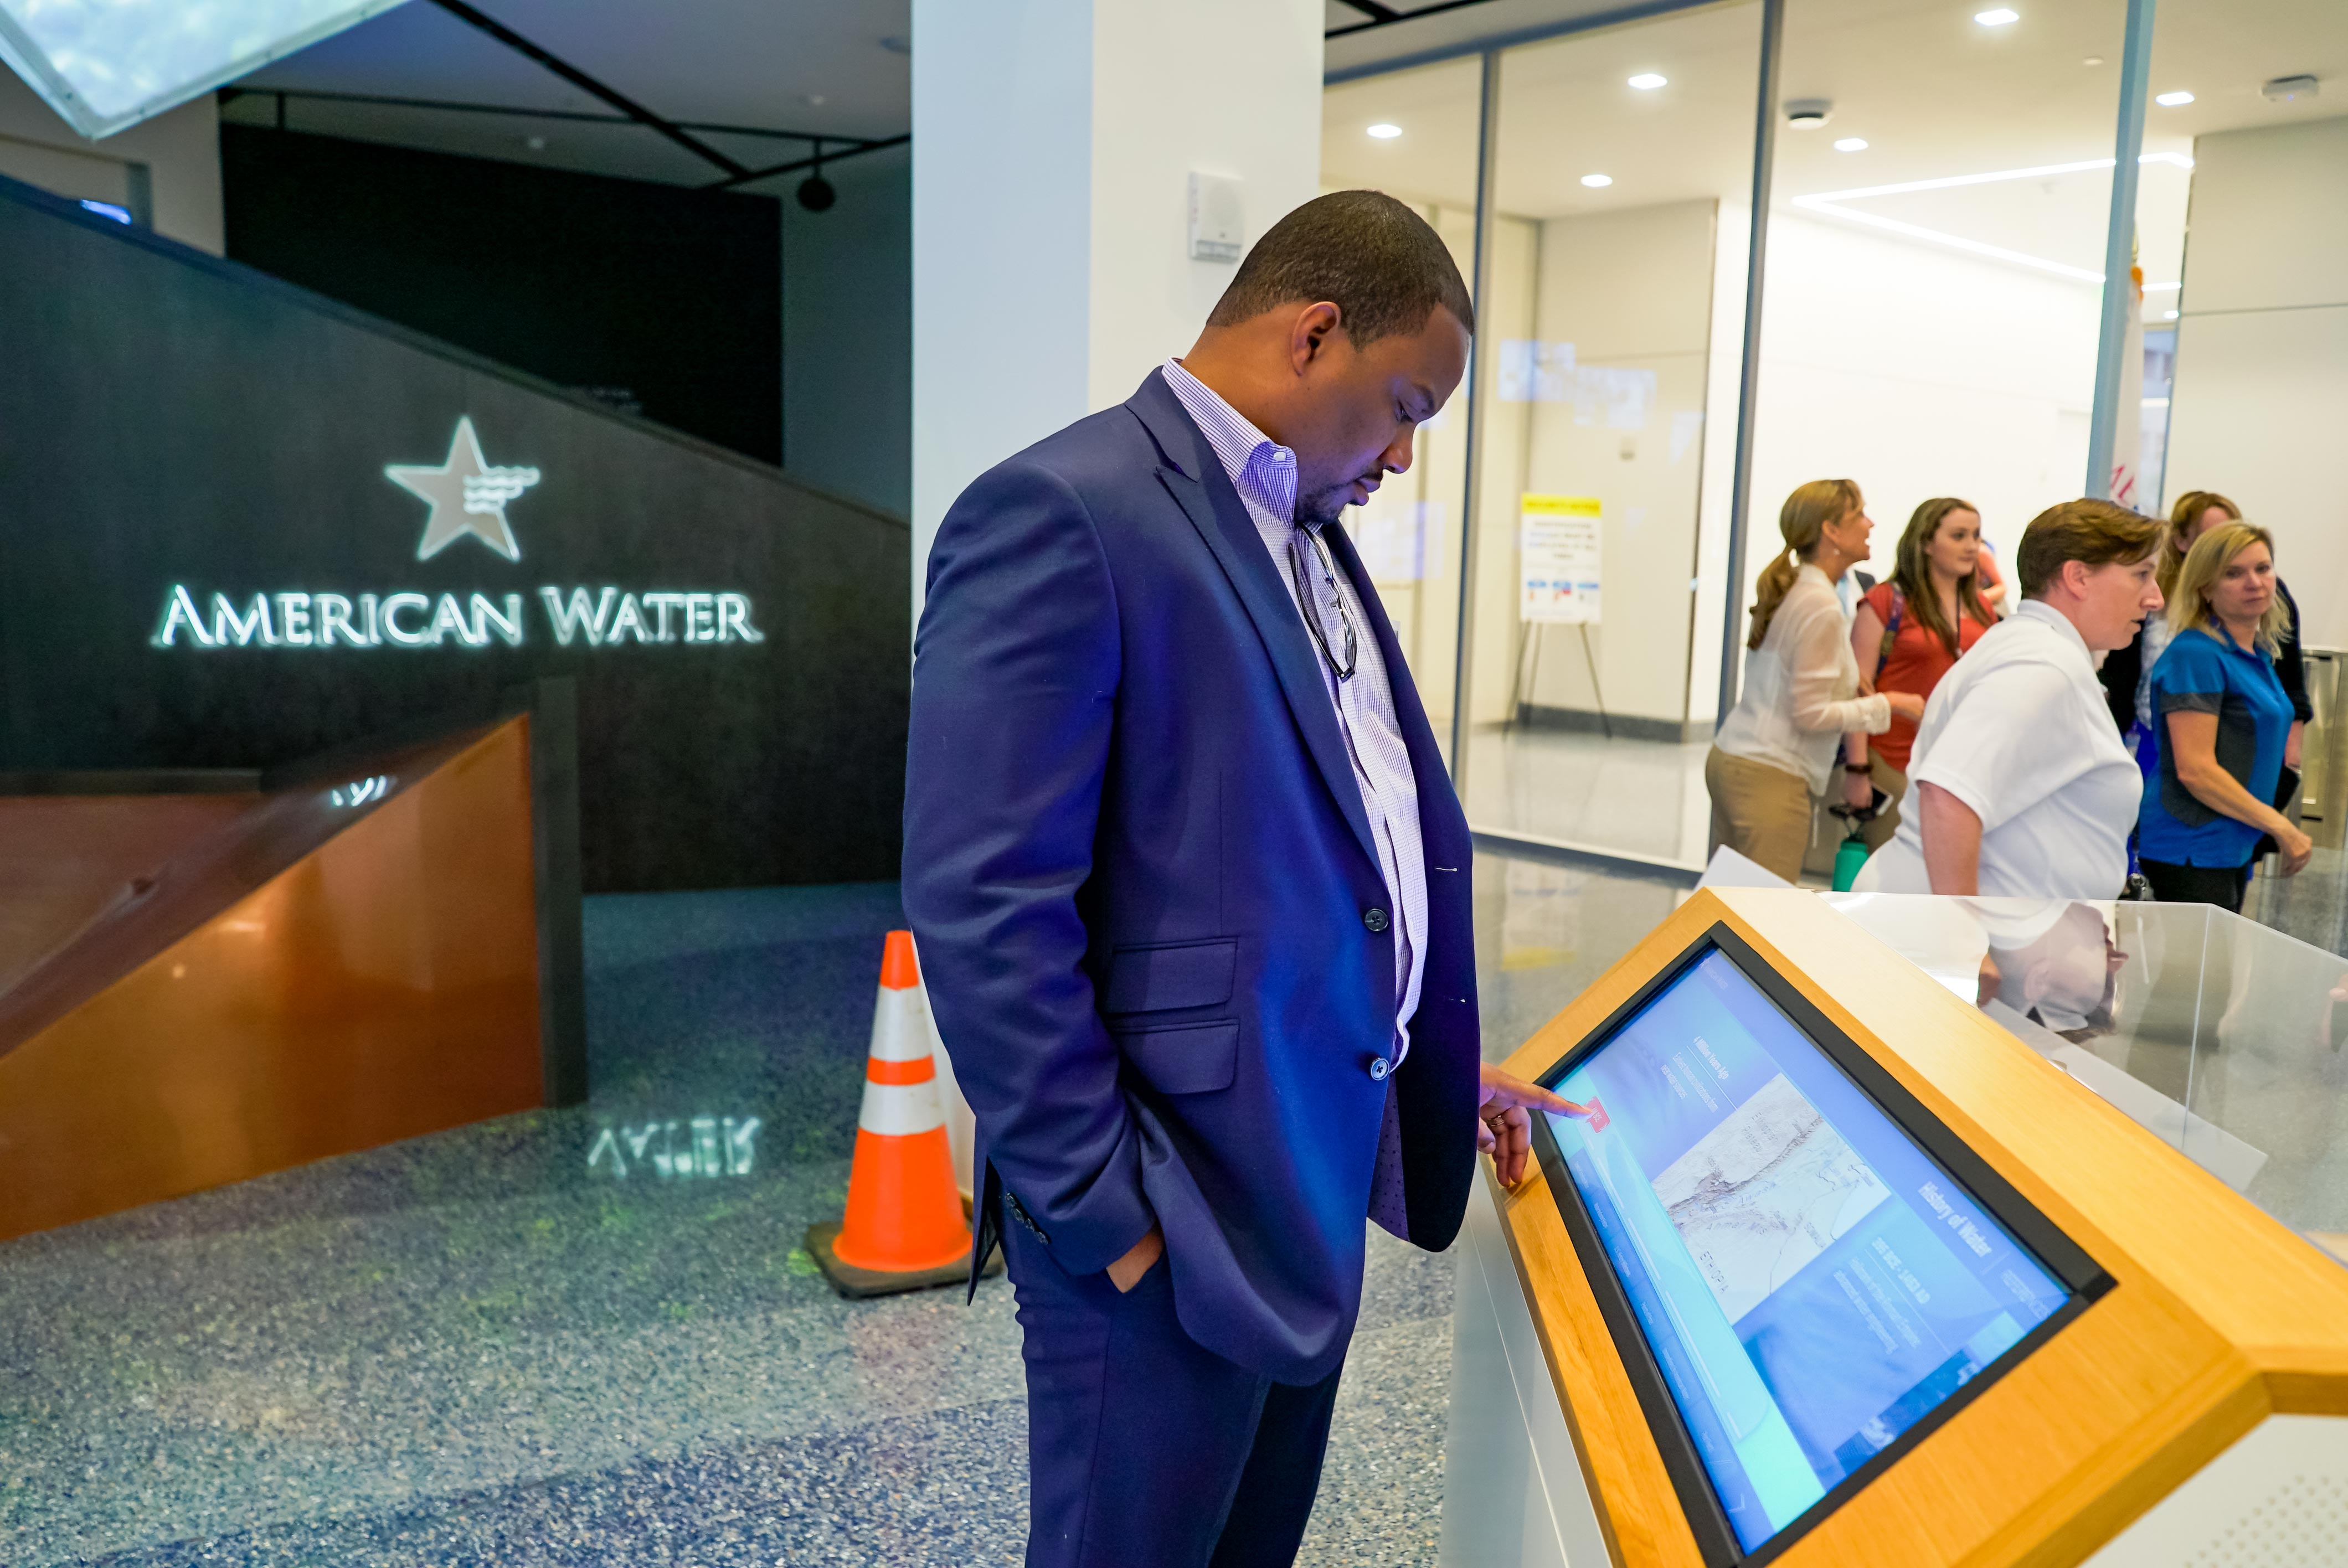 ASTOUND_AmericanWater_2019_(1)-1